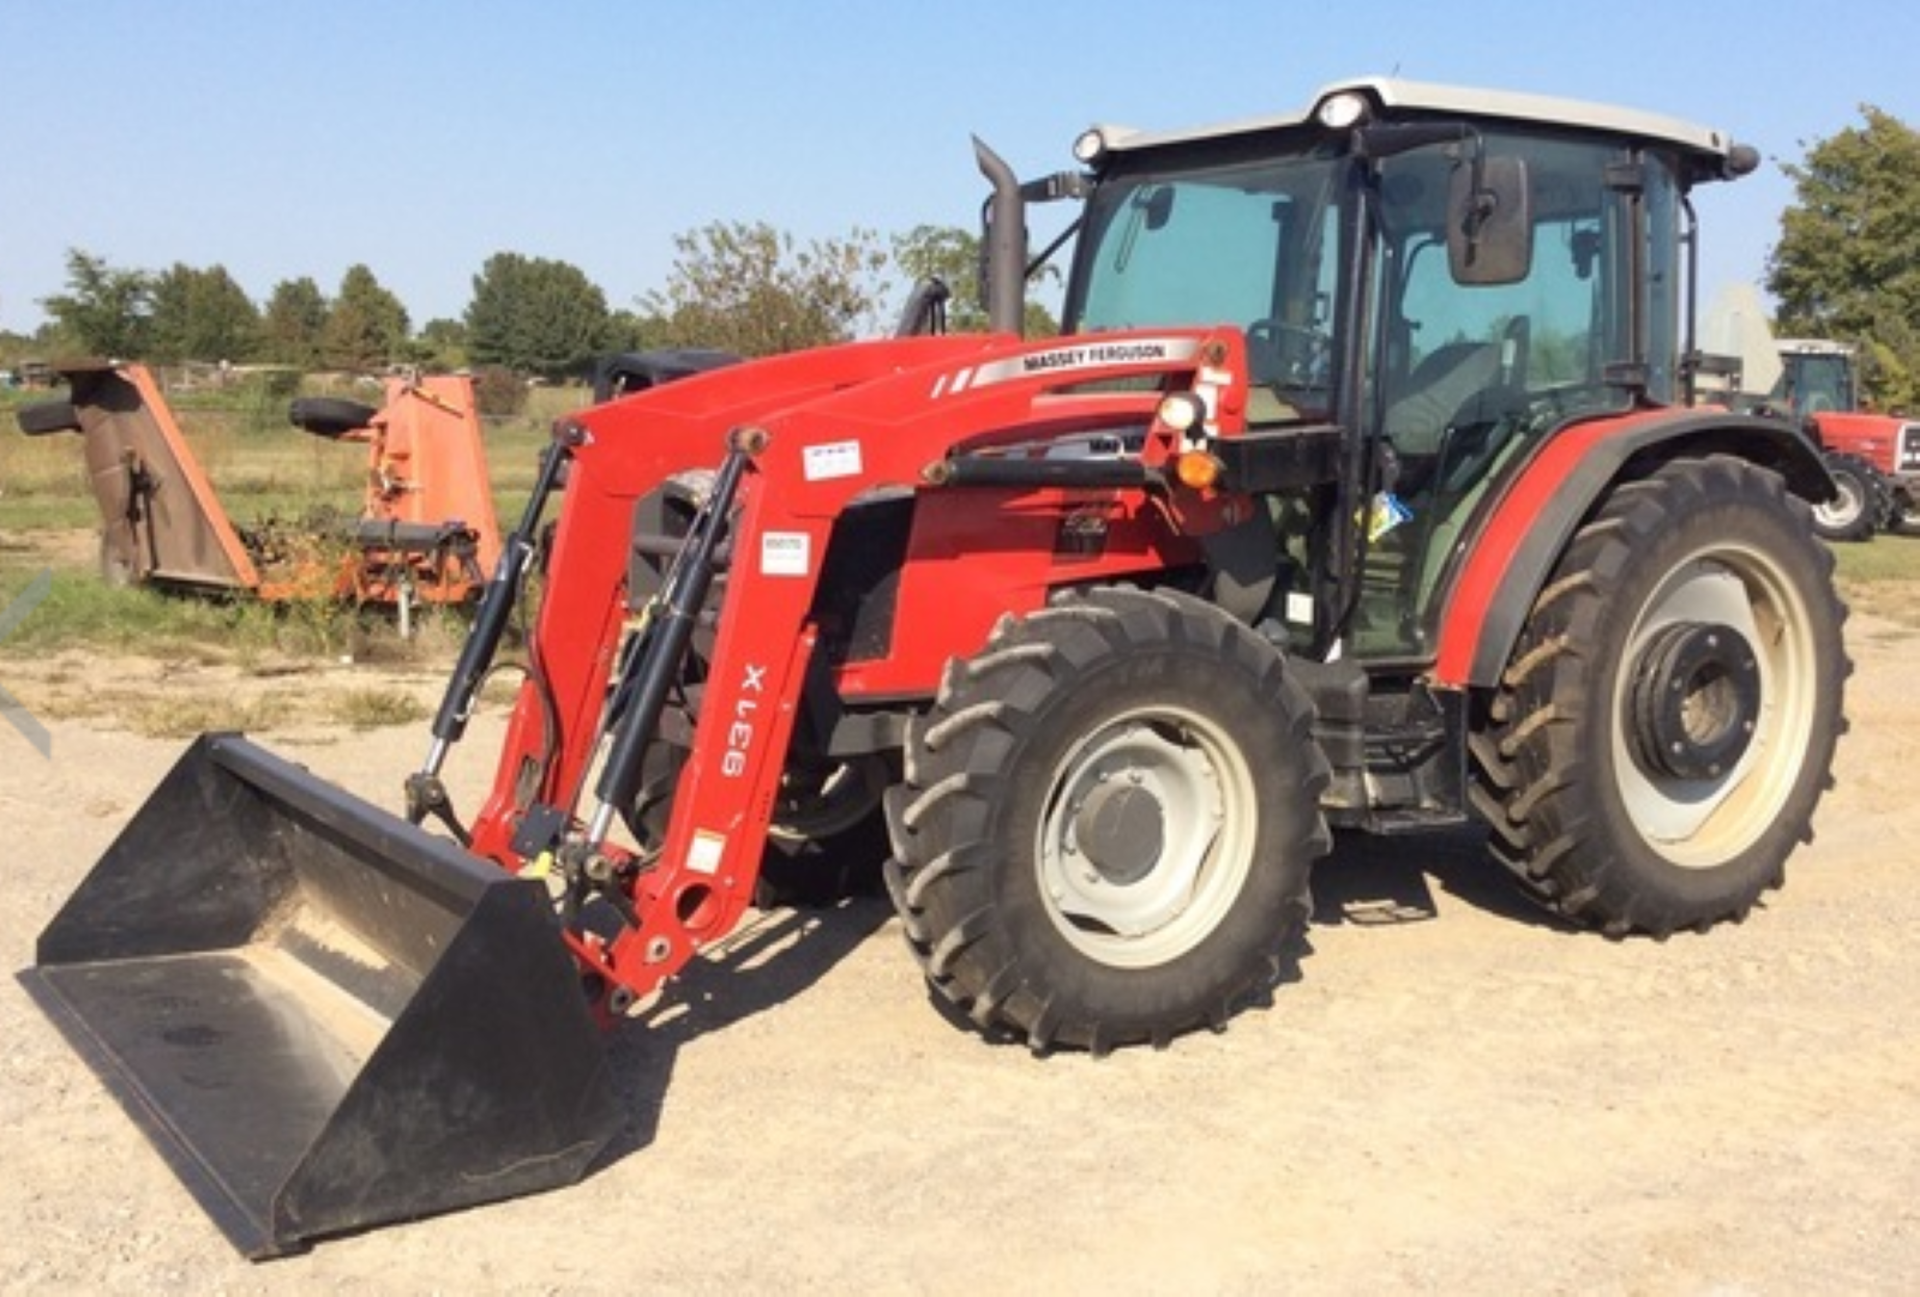 2018 MASSEY FERGUSON 4710 4WD TRACTOR WITH LOADER, AGCO 3.3 LITRE 3CYL TURBO DIESEL *PLUS VAT* - Image 9 of 21